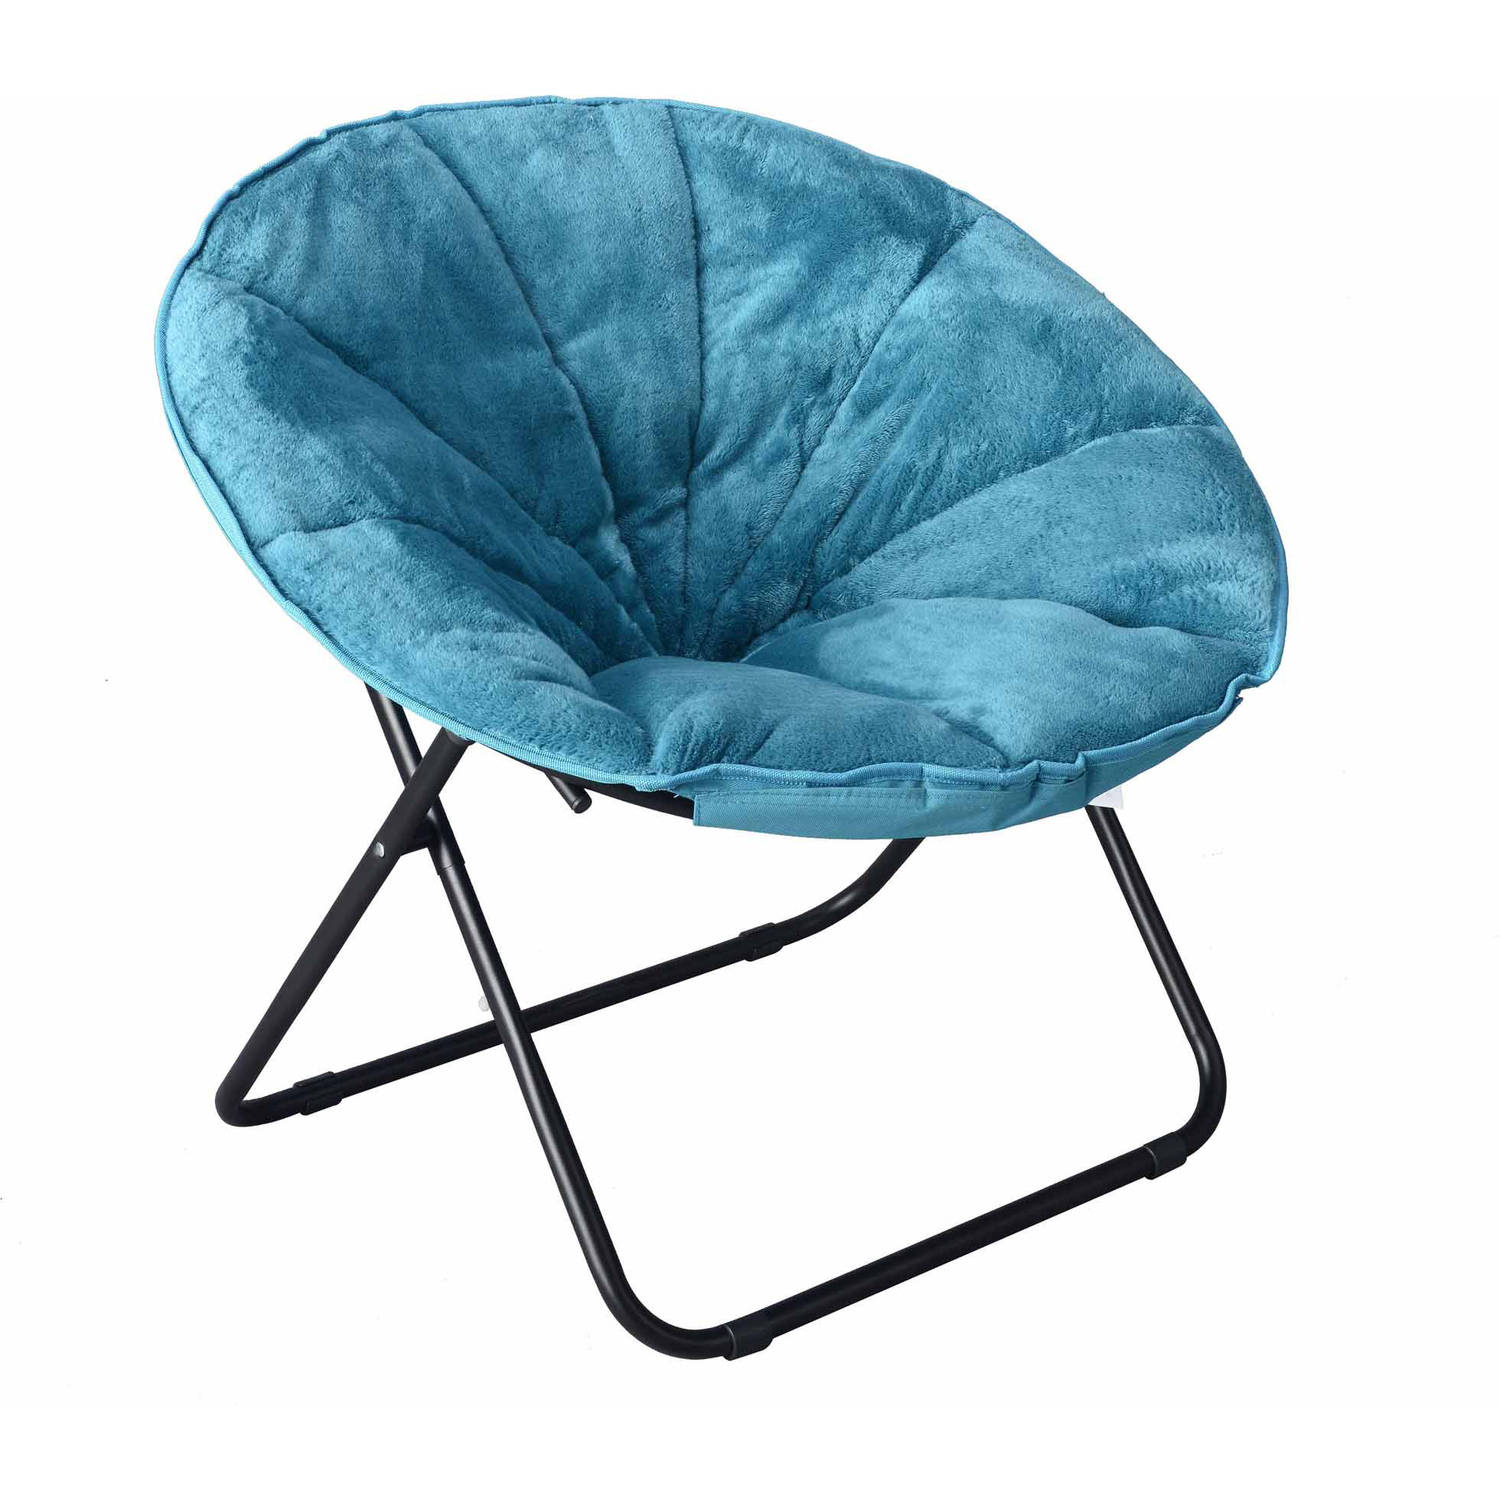 Mainstays Plush Saucer Chair, Multiple Colors